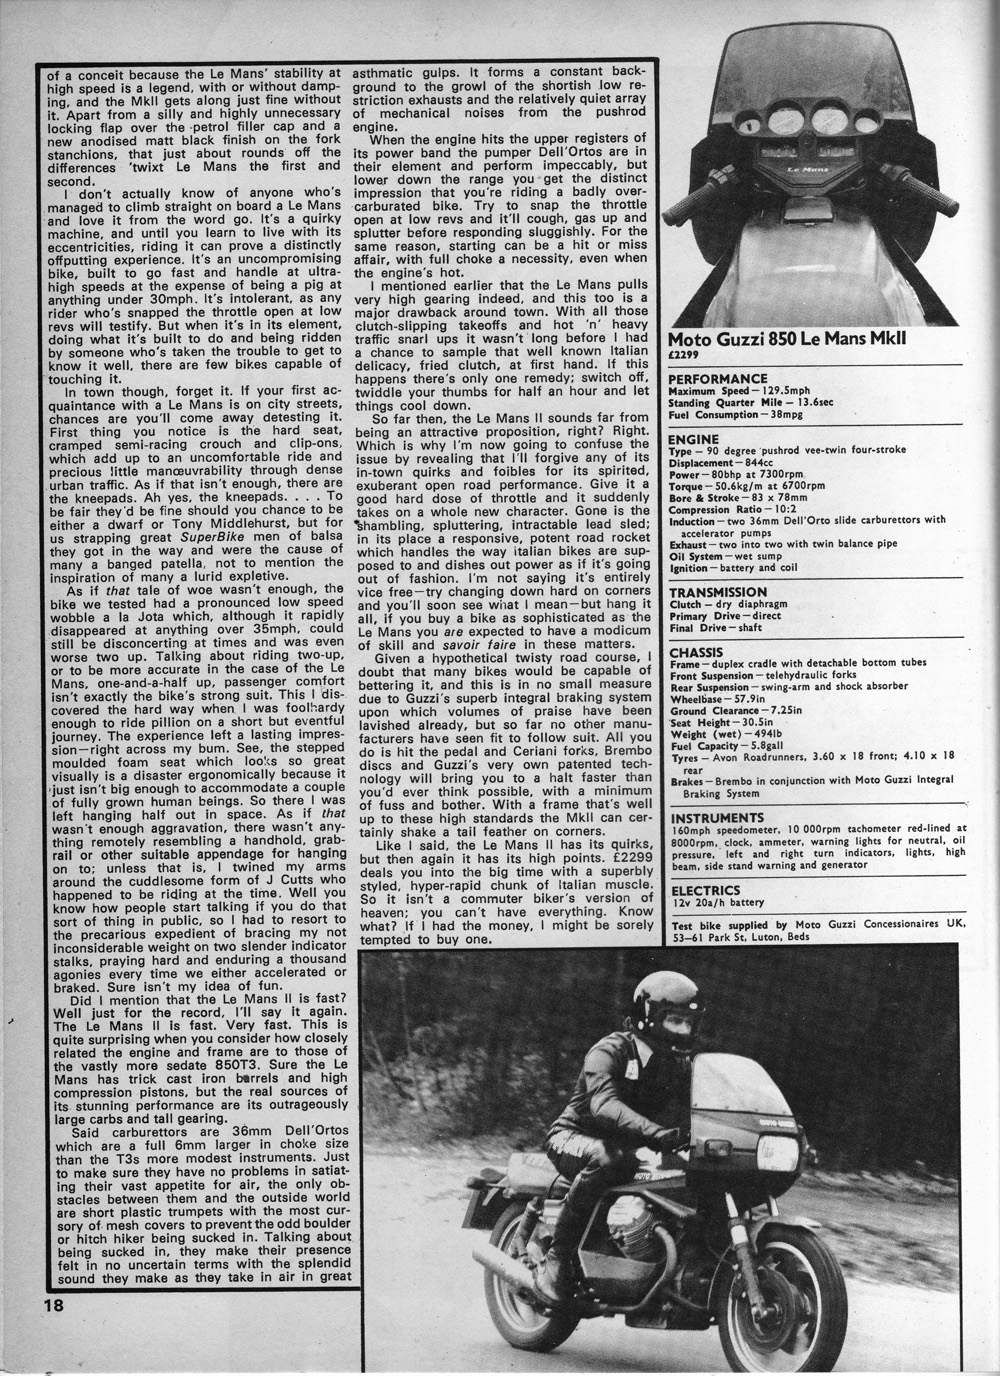 1979 Moto Guzzi 850 LeMans MkII road test 03.jpg